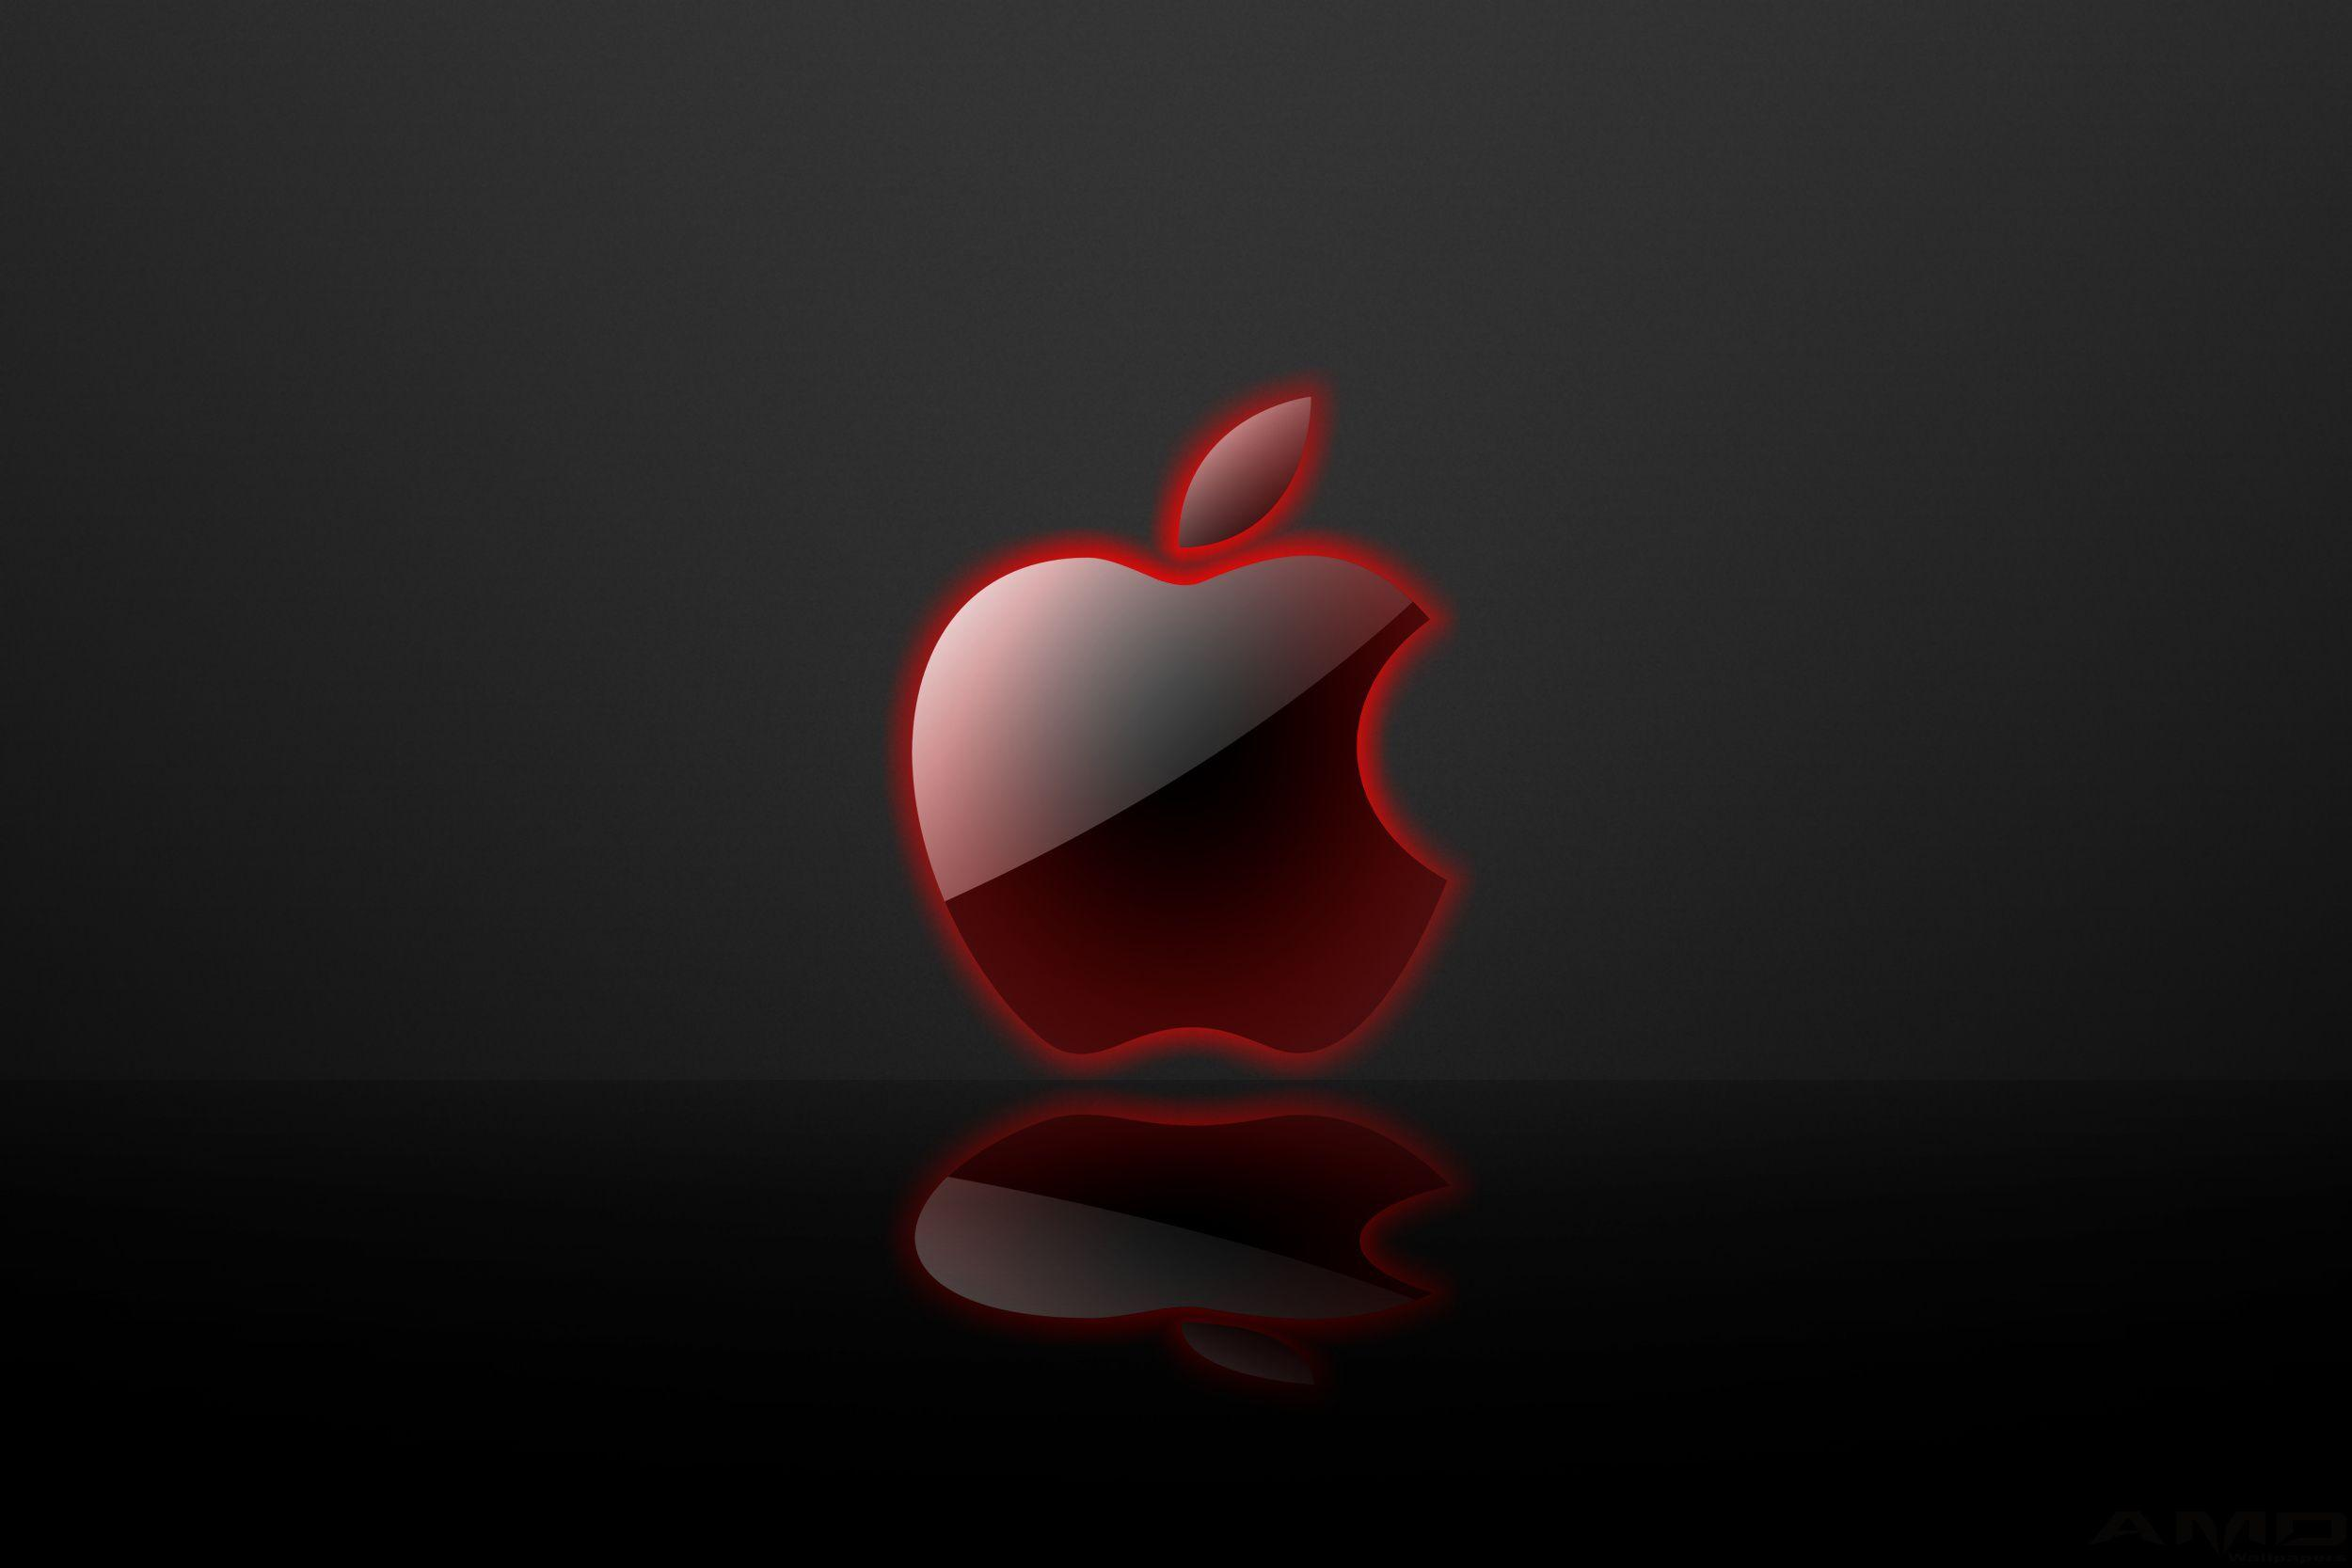 Apples Wallpapers - Wallpaper Cave |Red Apples Wallpaper